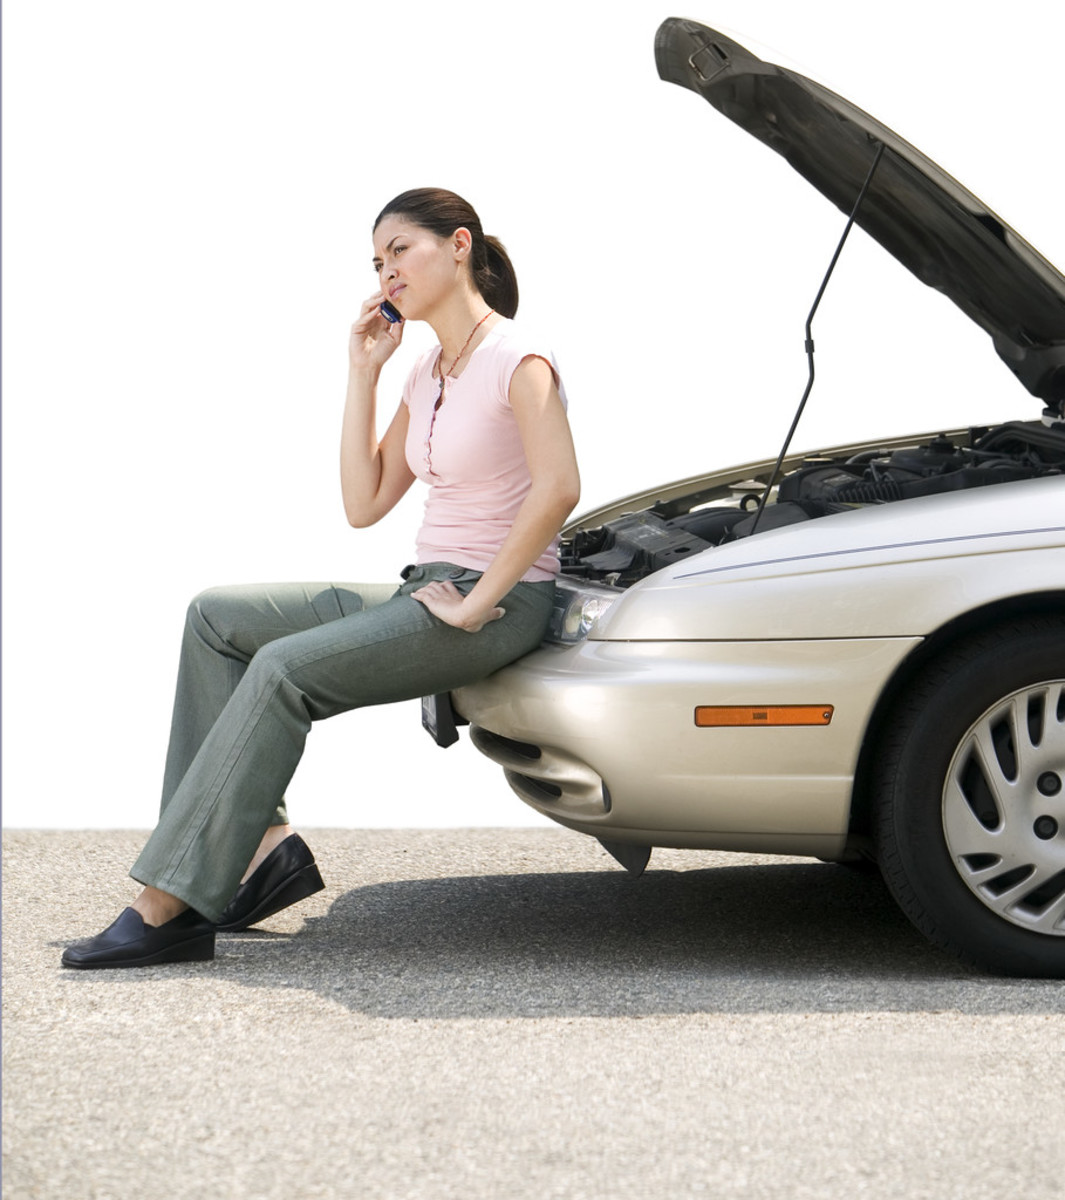 how-can-a-woman-know-her-mechanic-is-legit-six-tips-for-managing-car-repairs